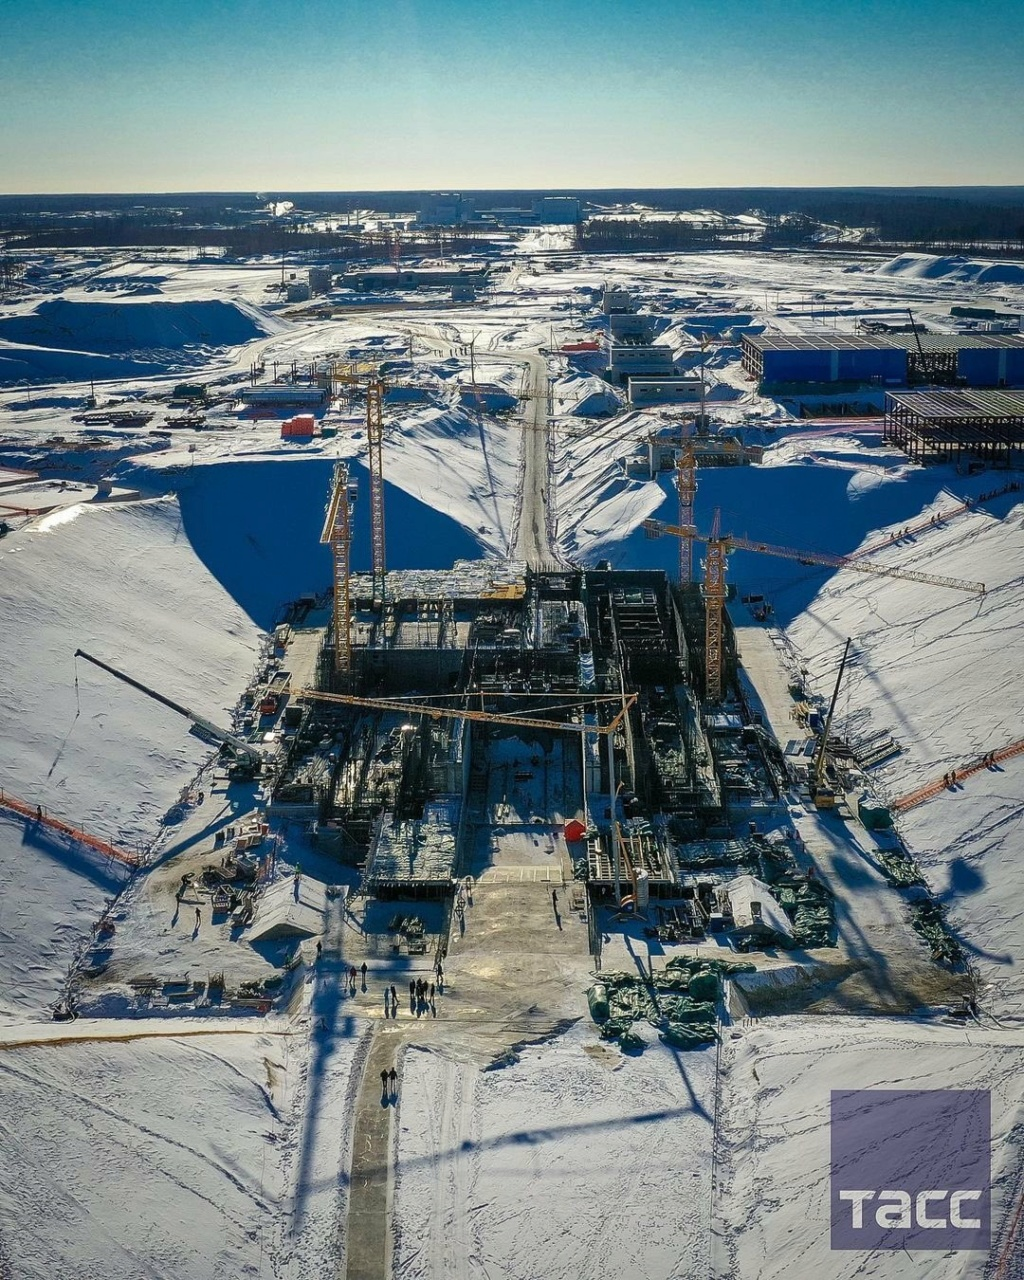 New Russian Cosmodrome - Vostochniy - Page 9 Epur0_11